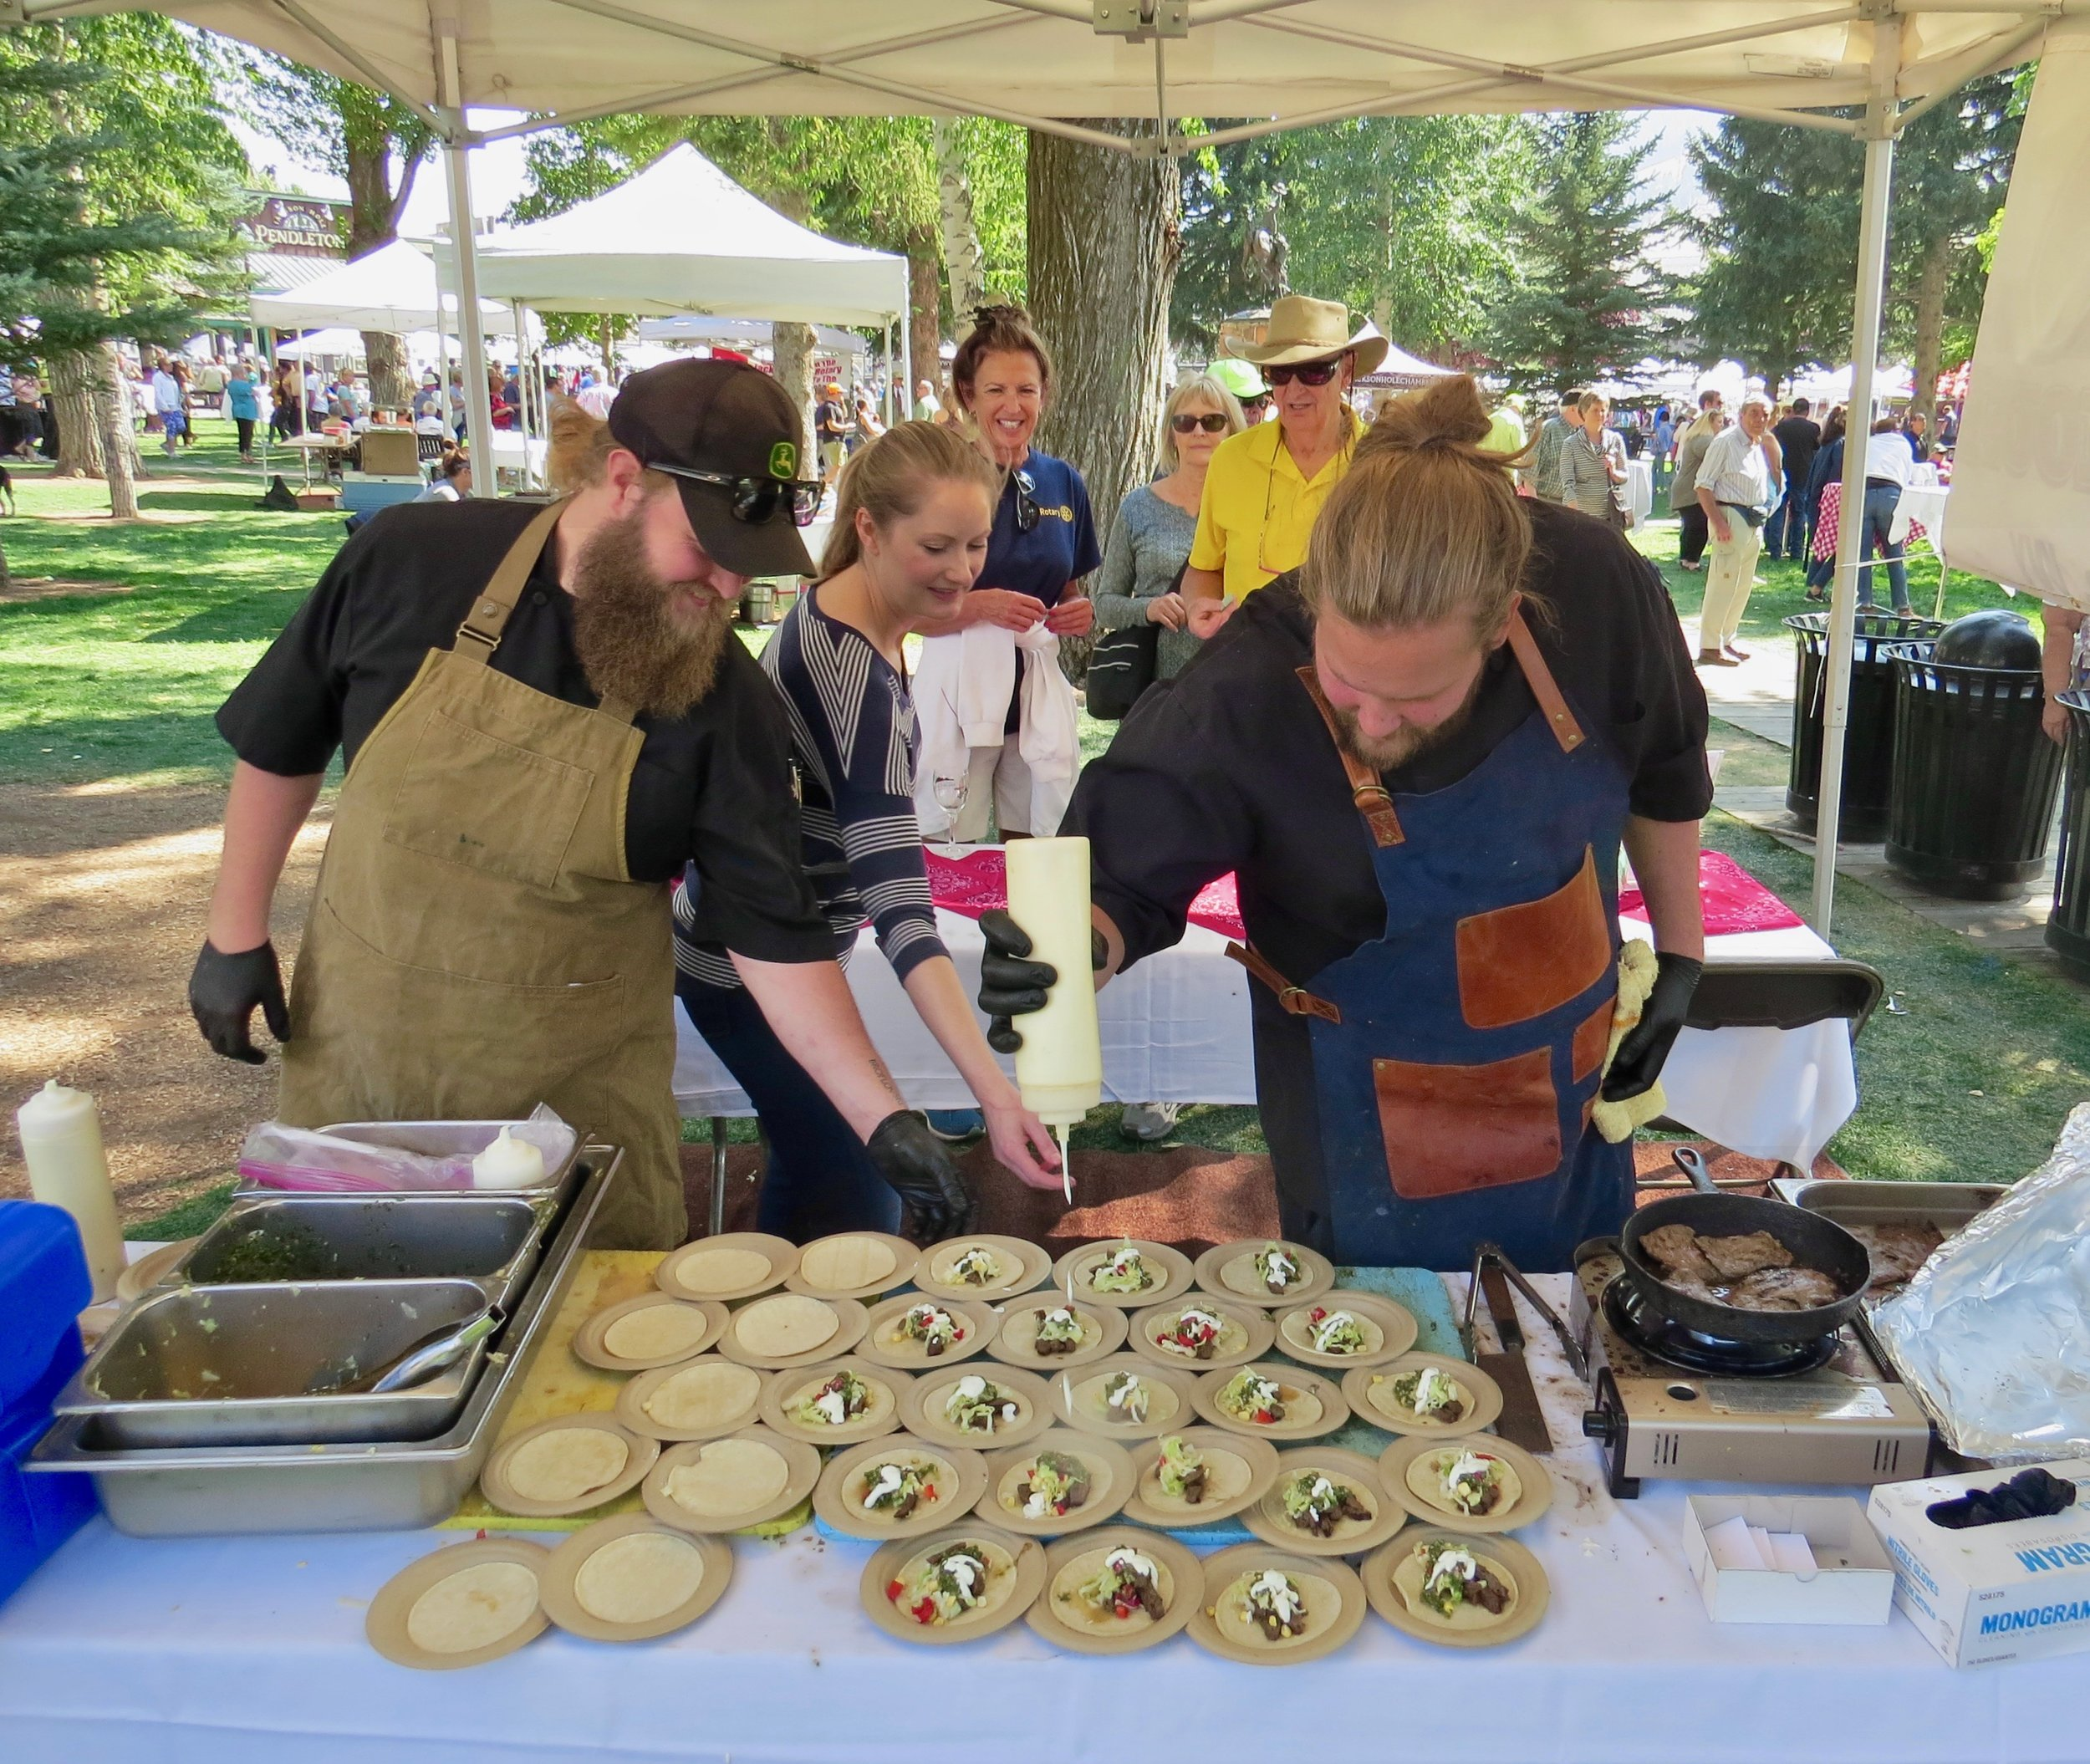 Taste of the Tetons, a sampling of cuisine from local chefs and restaurants